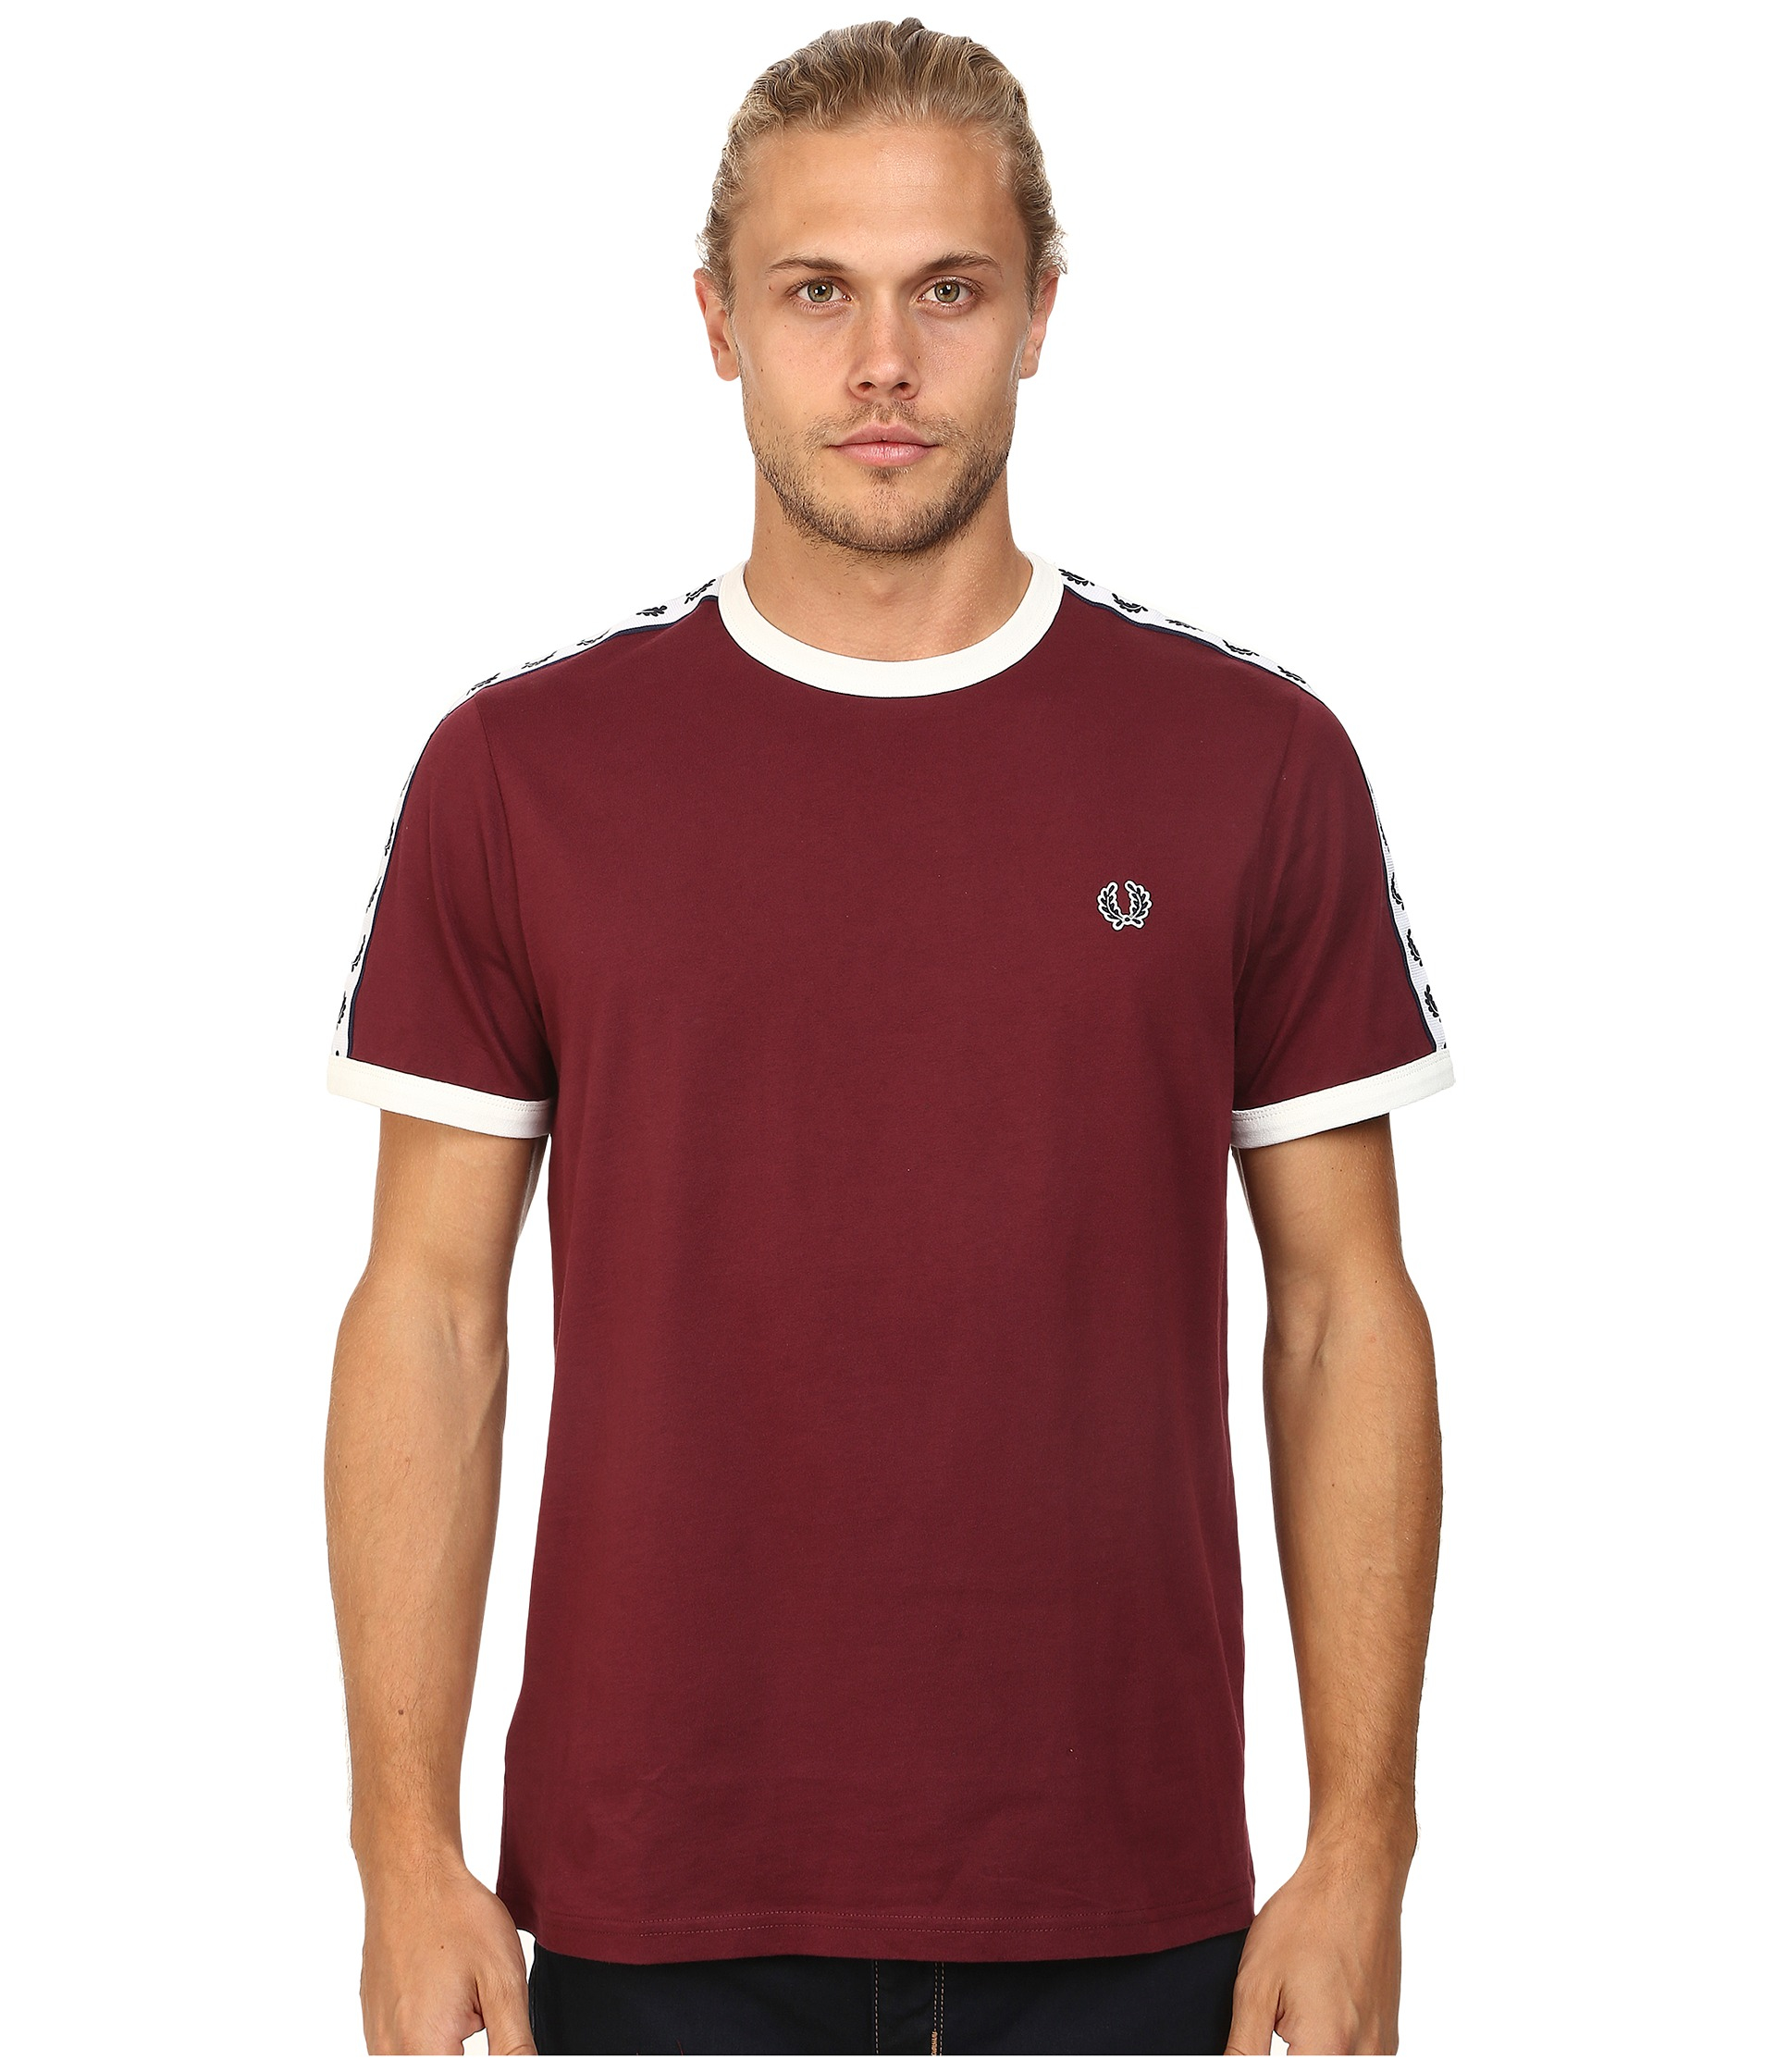 fred perry taped ringer t shirt in red for men port lyst. Black Bedroom Furniture Sets. Home Design Ideas